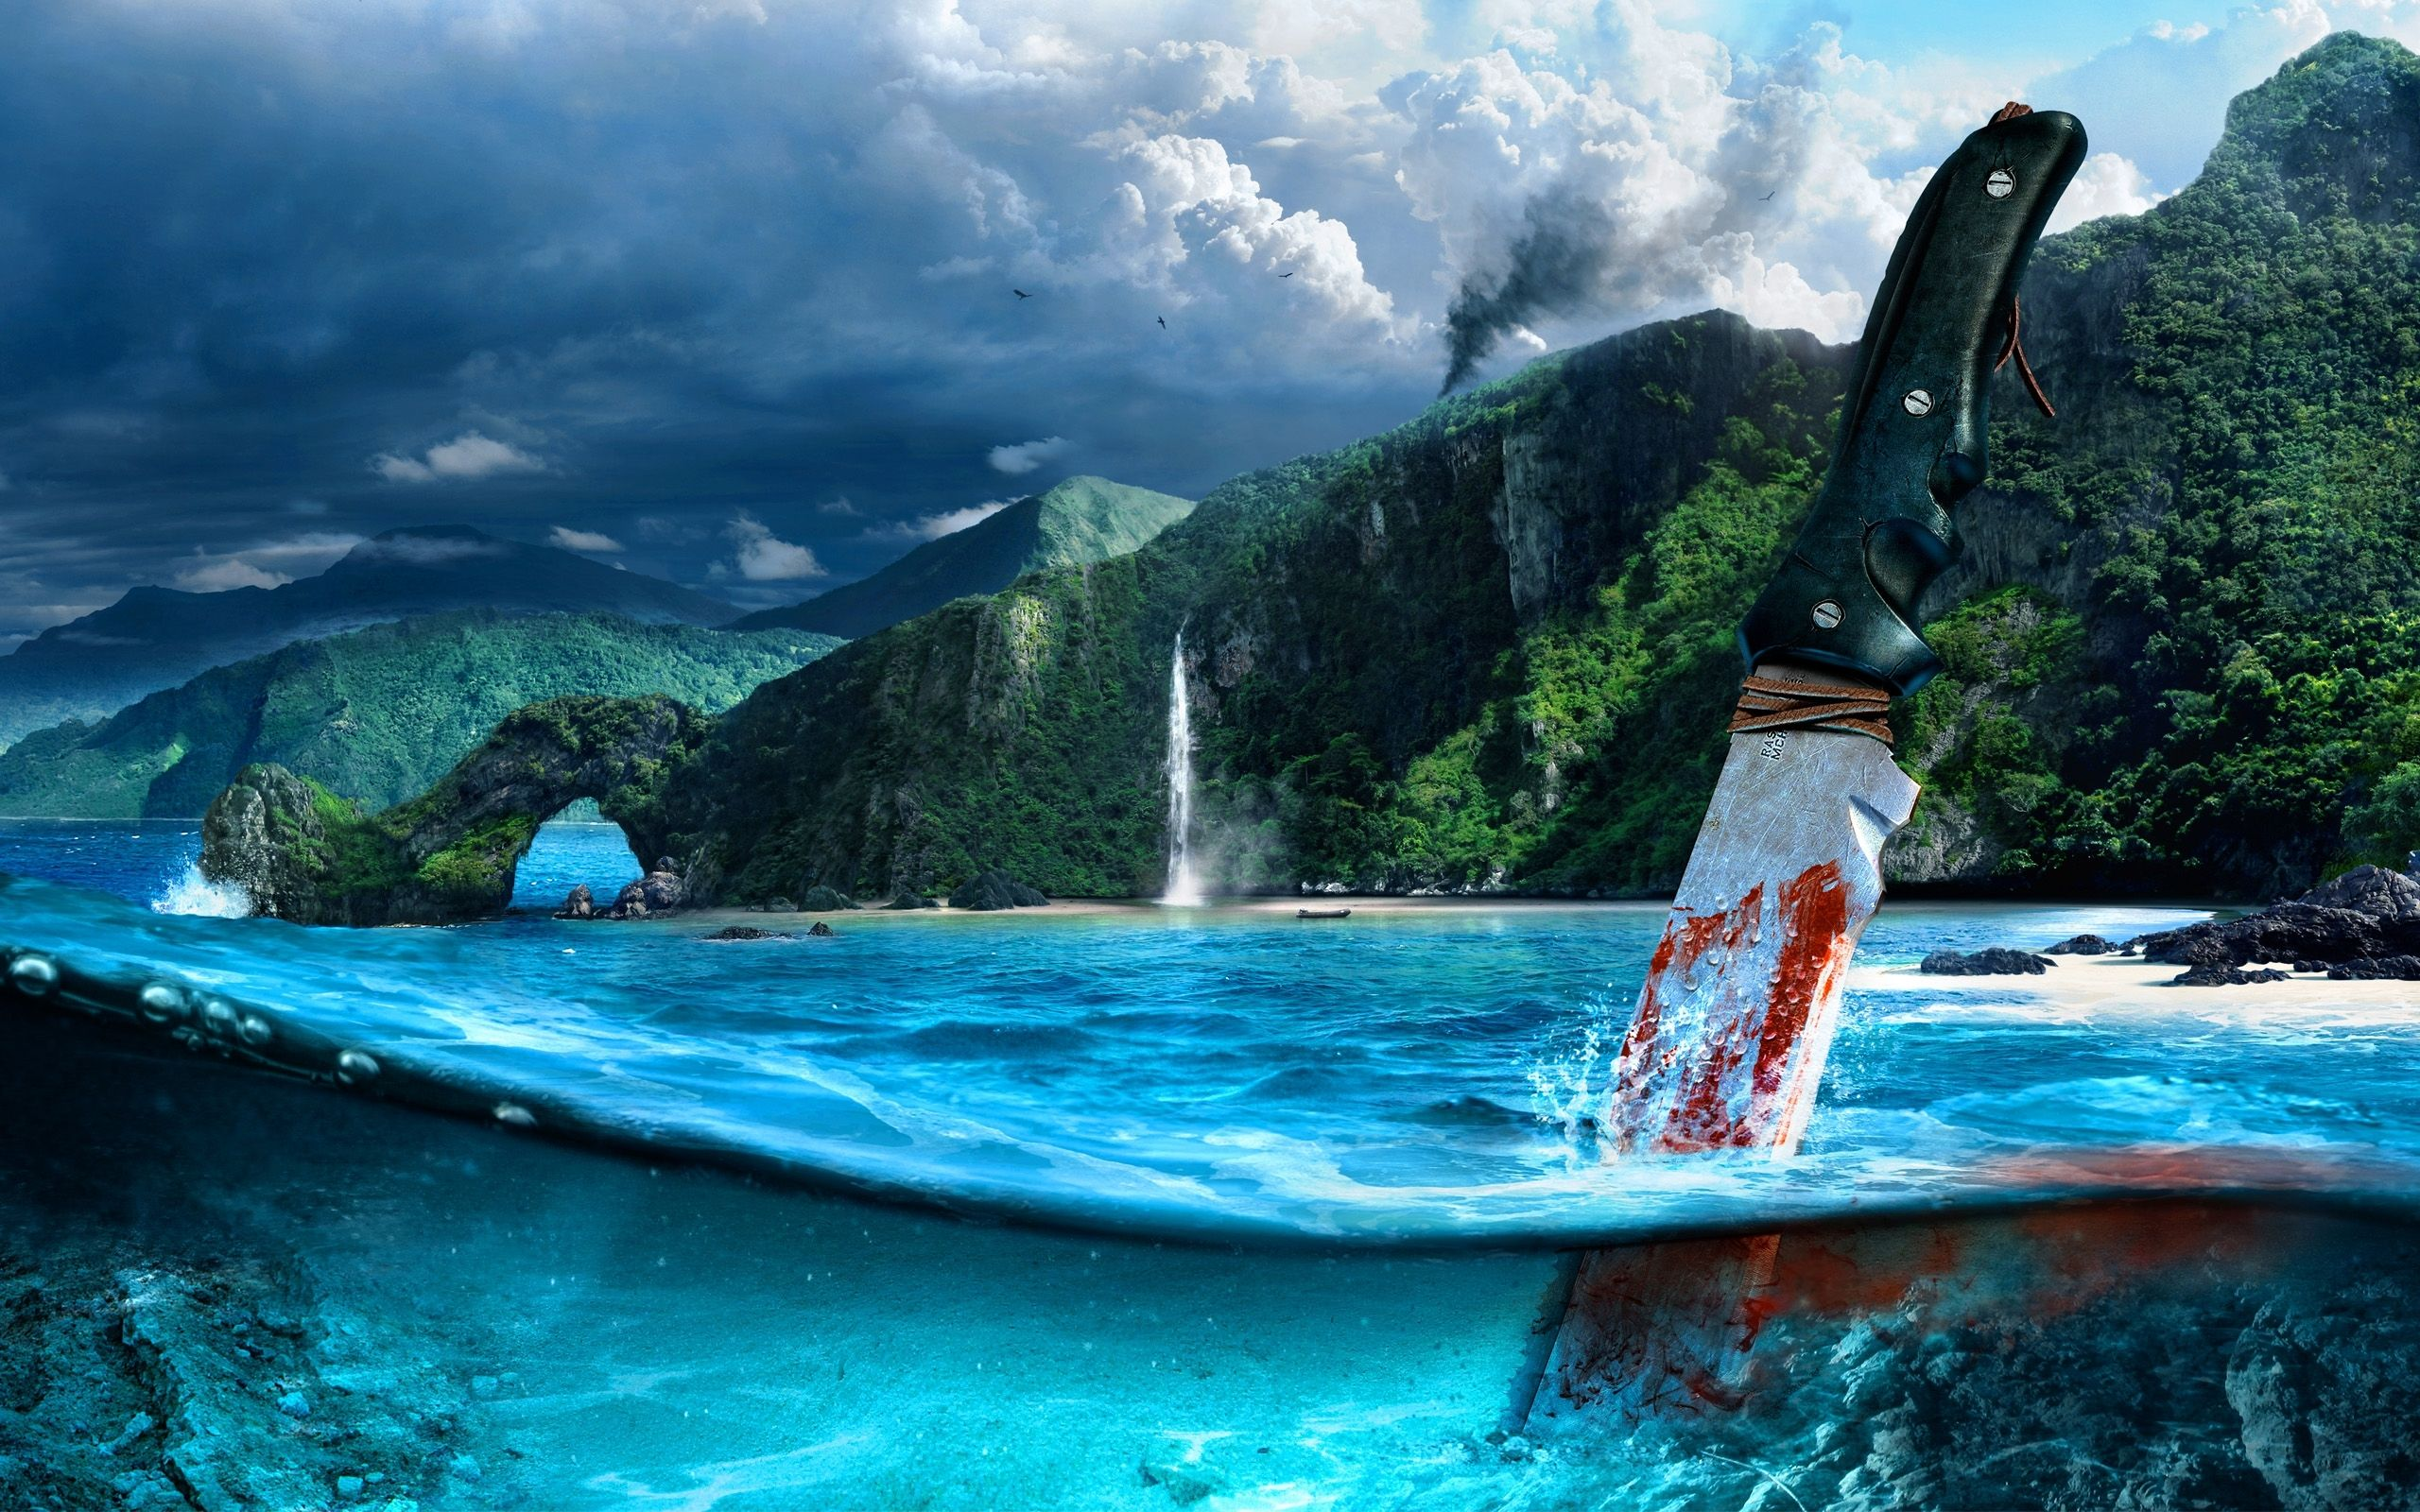 10 Top Far Cry 3 Wallpaper Full Hd 1080p For Pc Desktop In 2020 Gaming Wallpapers Far Cry 3 Background Images